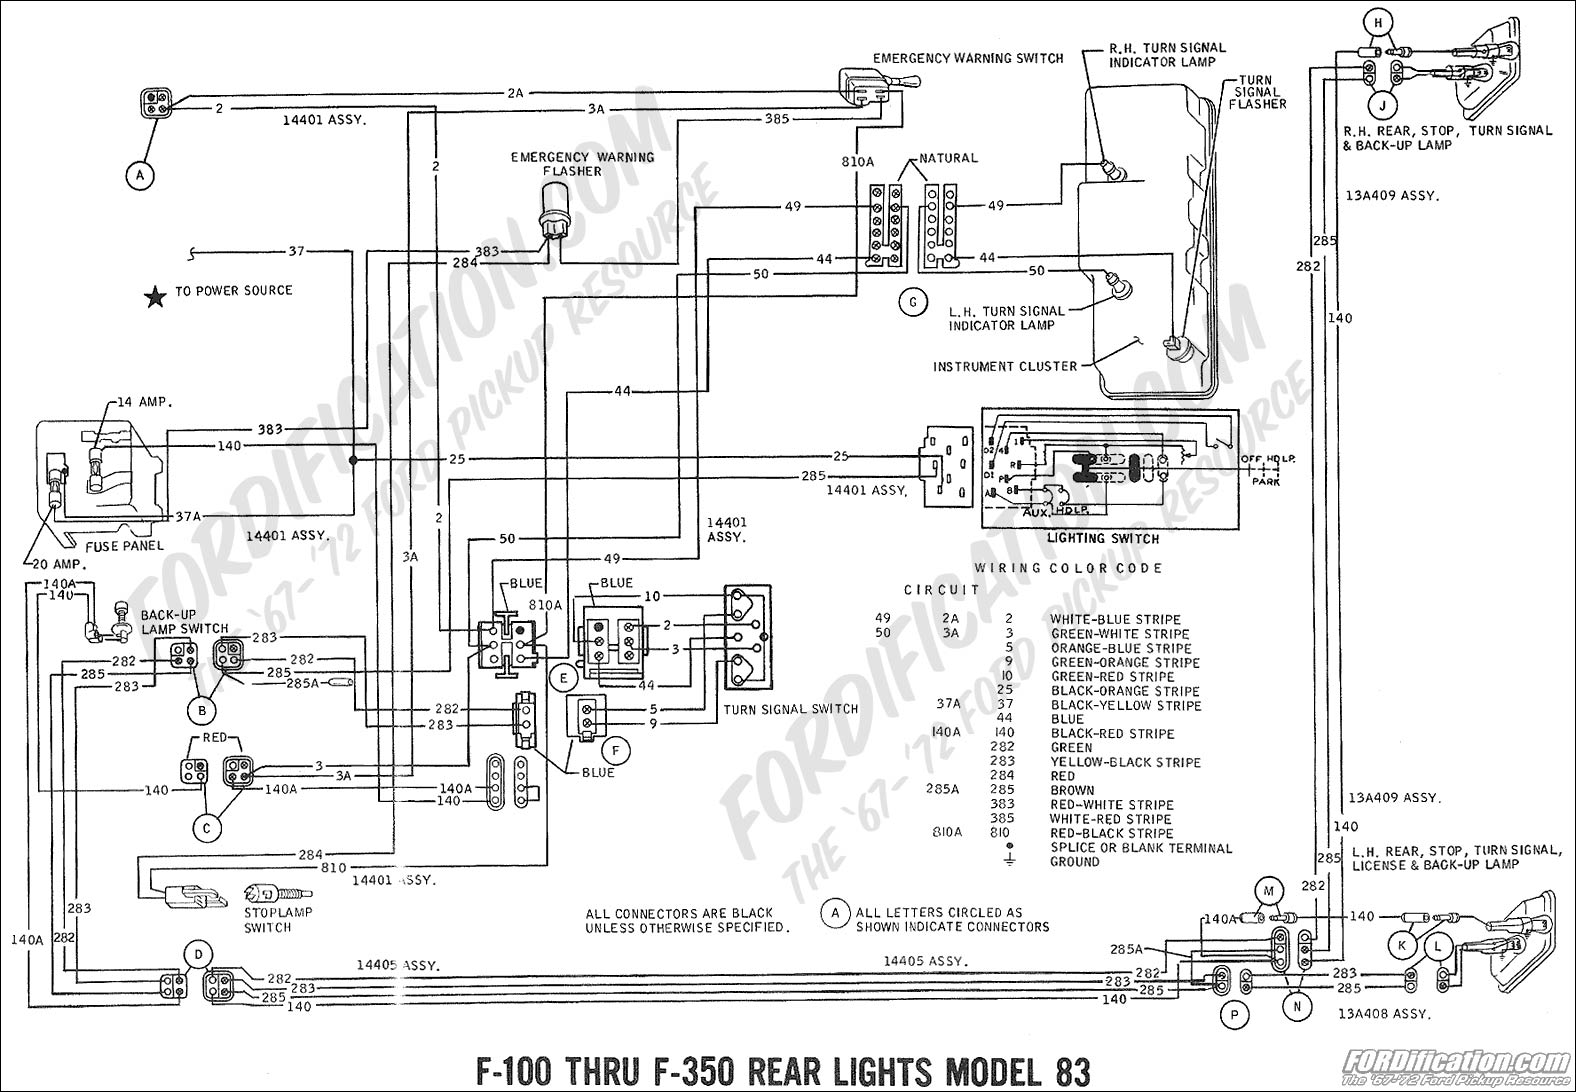 1984 ford mustang wiring harness wiring diagram schematics84 mustang wiring diagram wiring diagram database 1984 ford mustang wiring harness